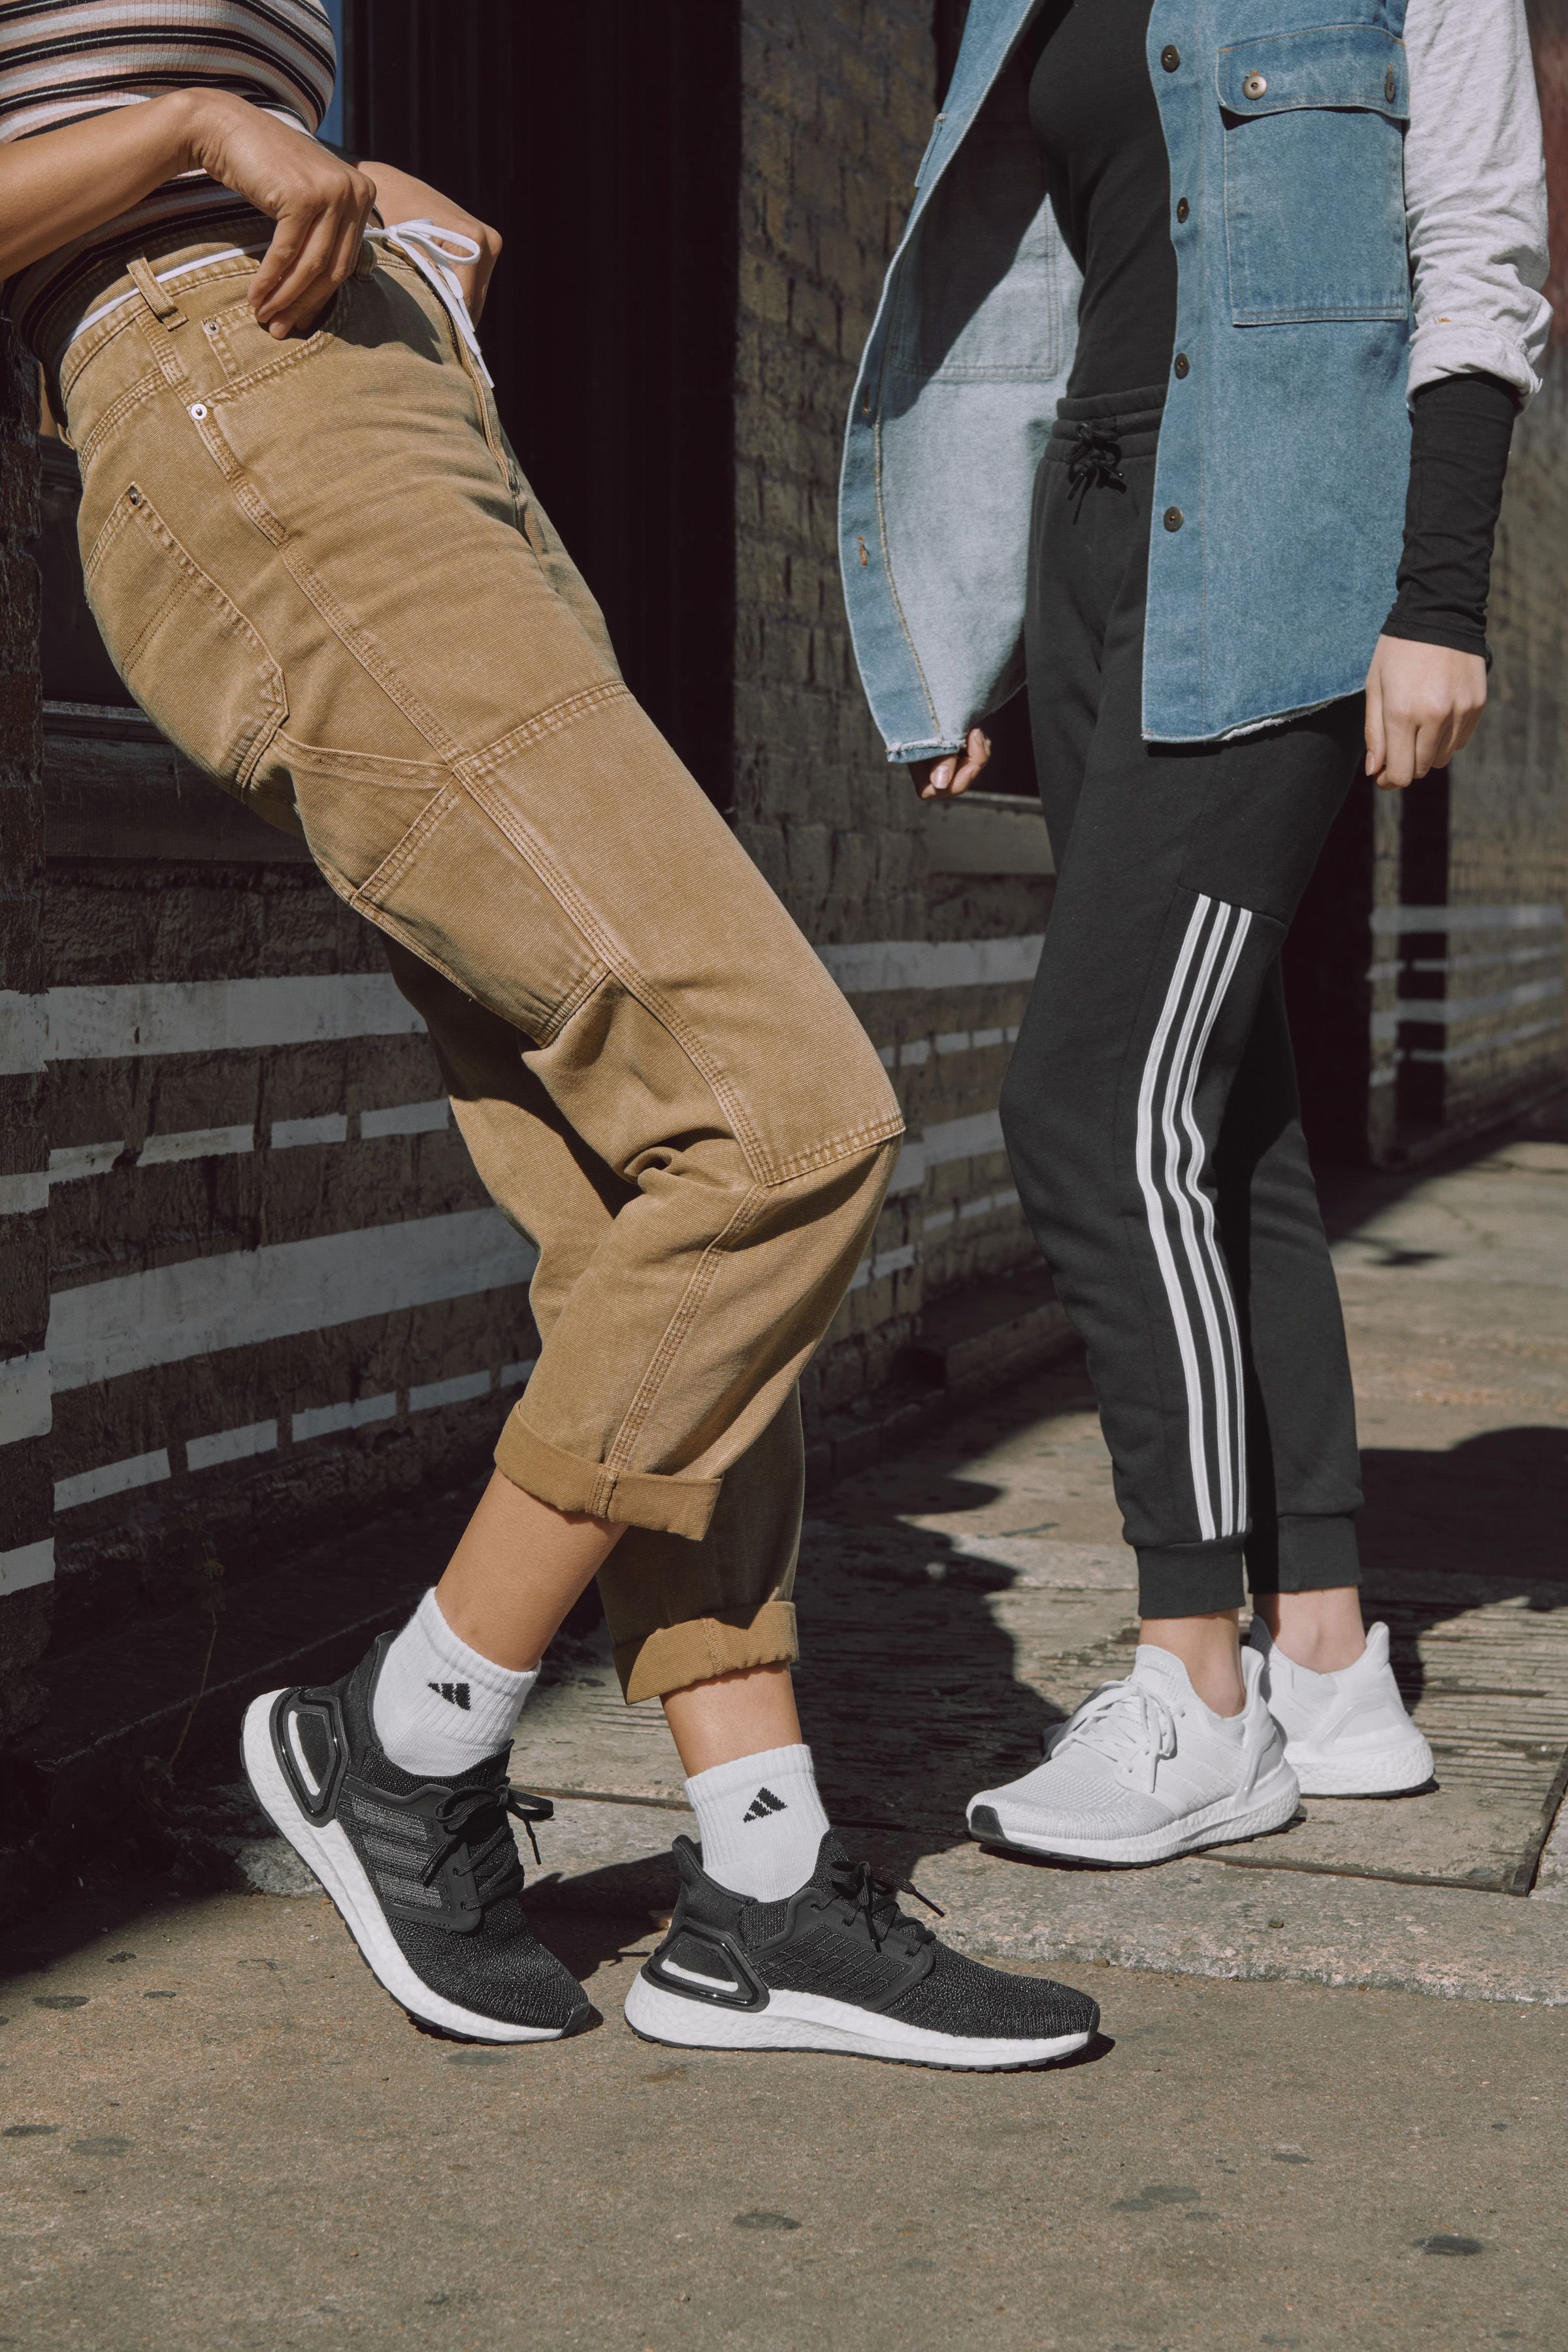 Adidas Ultraboost 20 Comfort For Your On The Go Lifestyle And Your Next Best Running Shoe Adidas Ultra Boost Adidas Running Fitness Brand